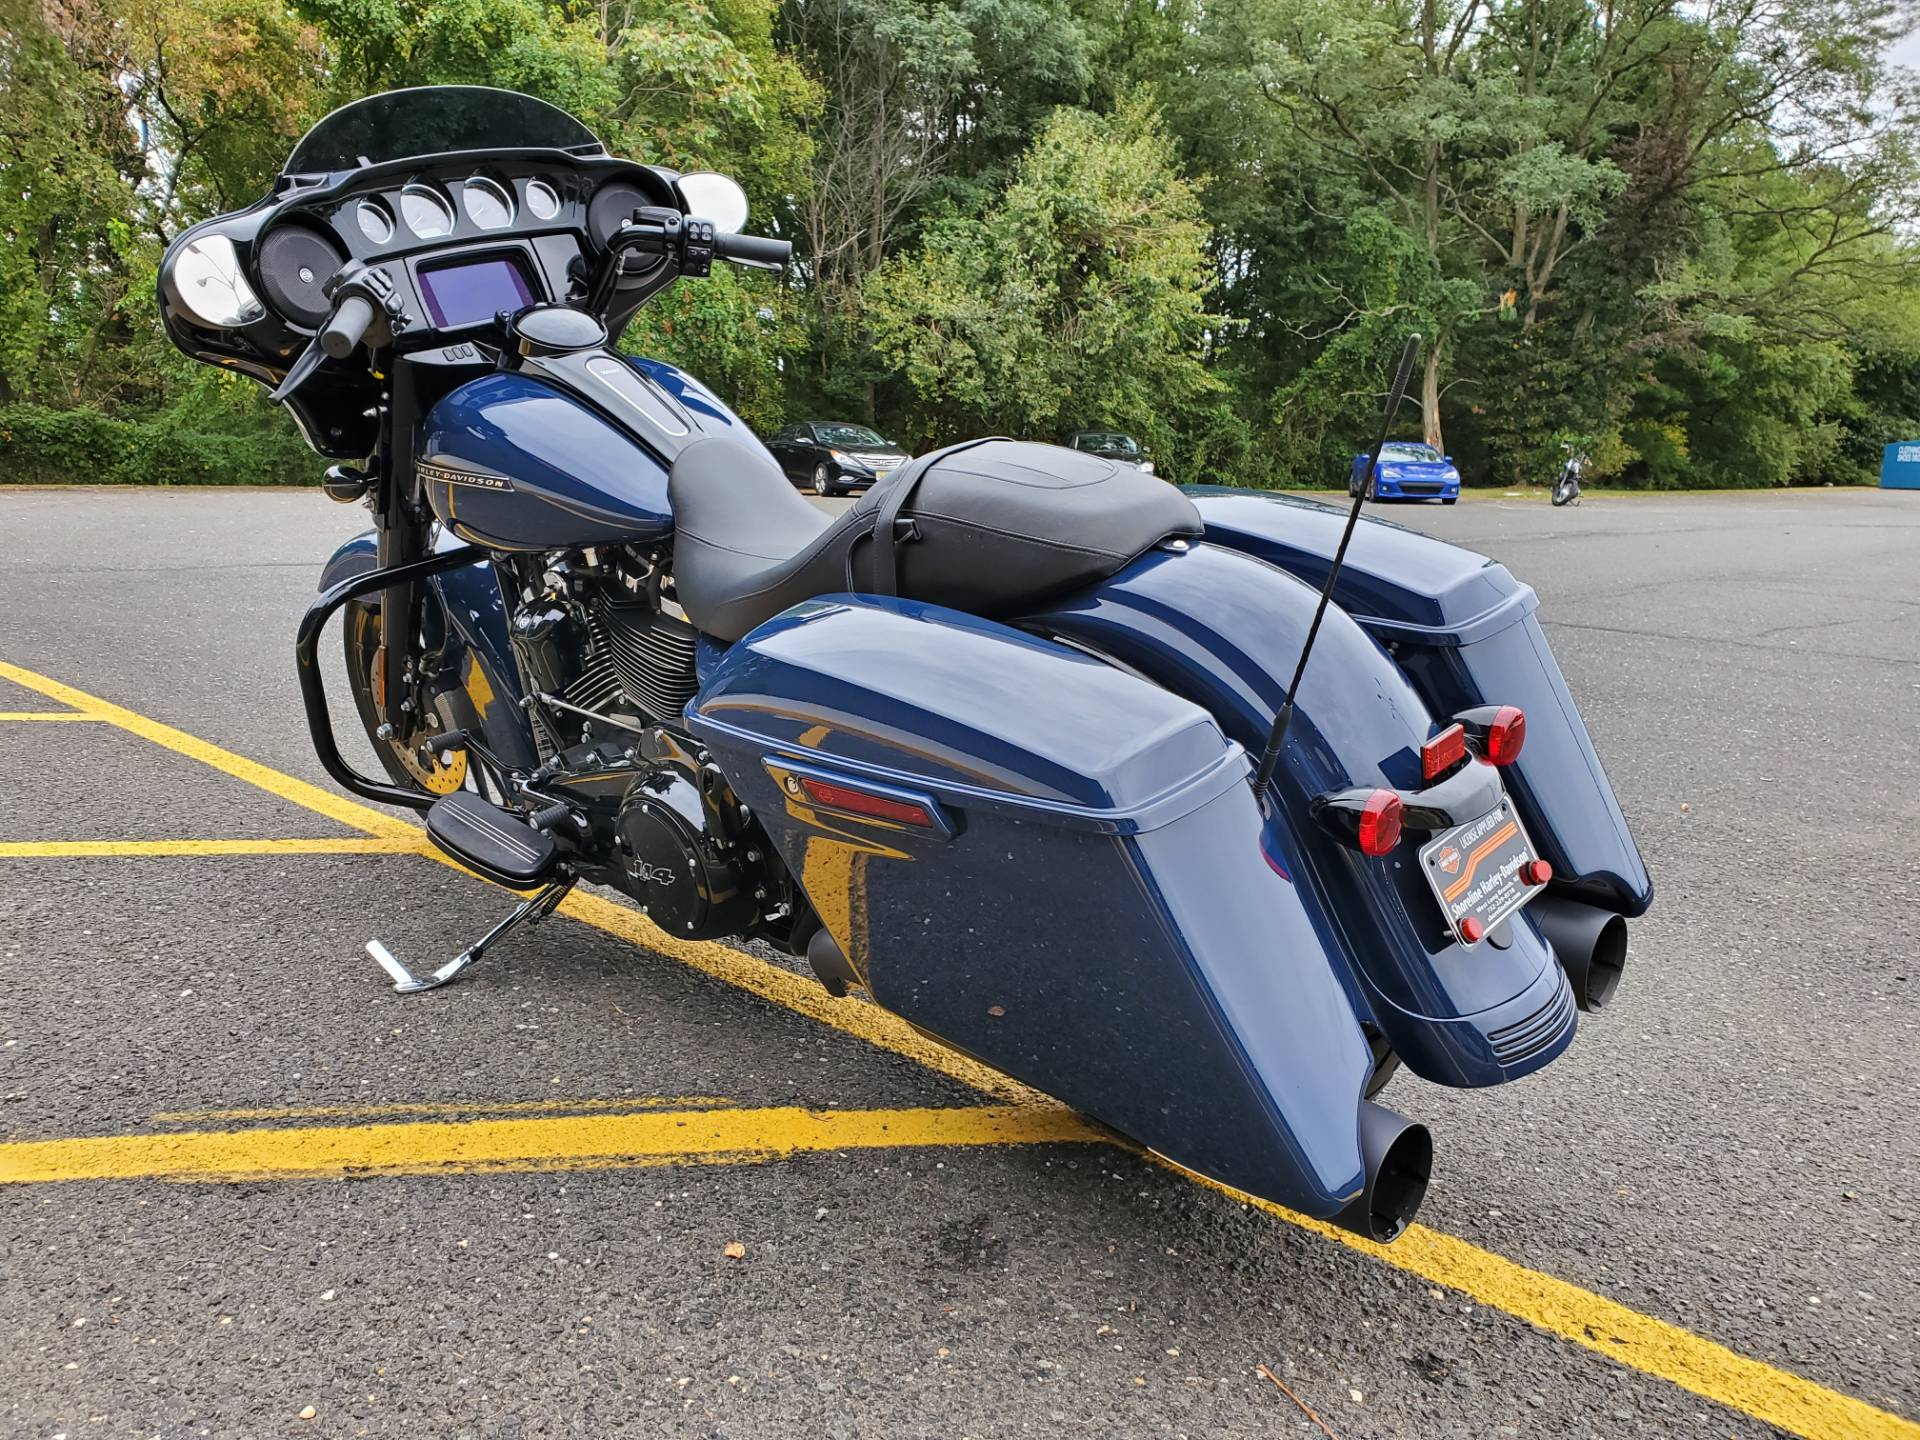 2019 Harley Davidson Street Glide Special In West Long Branch New Jersey